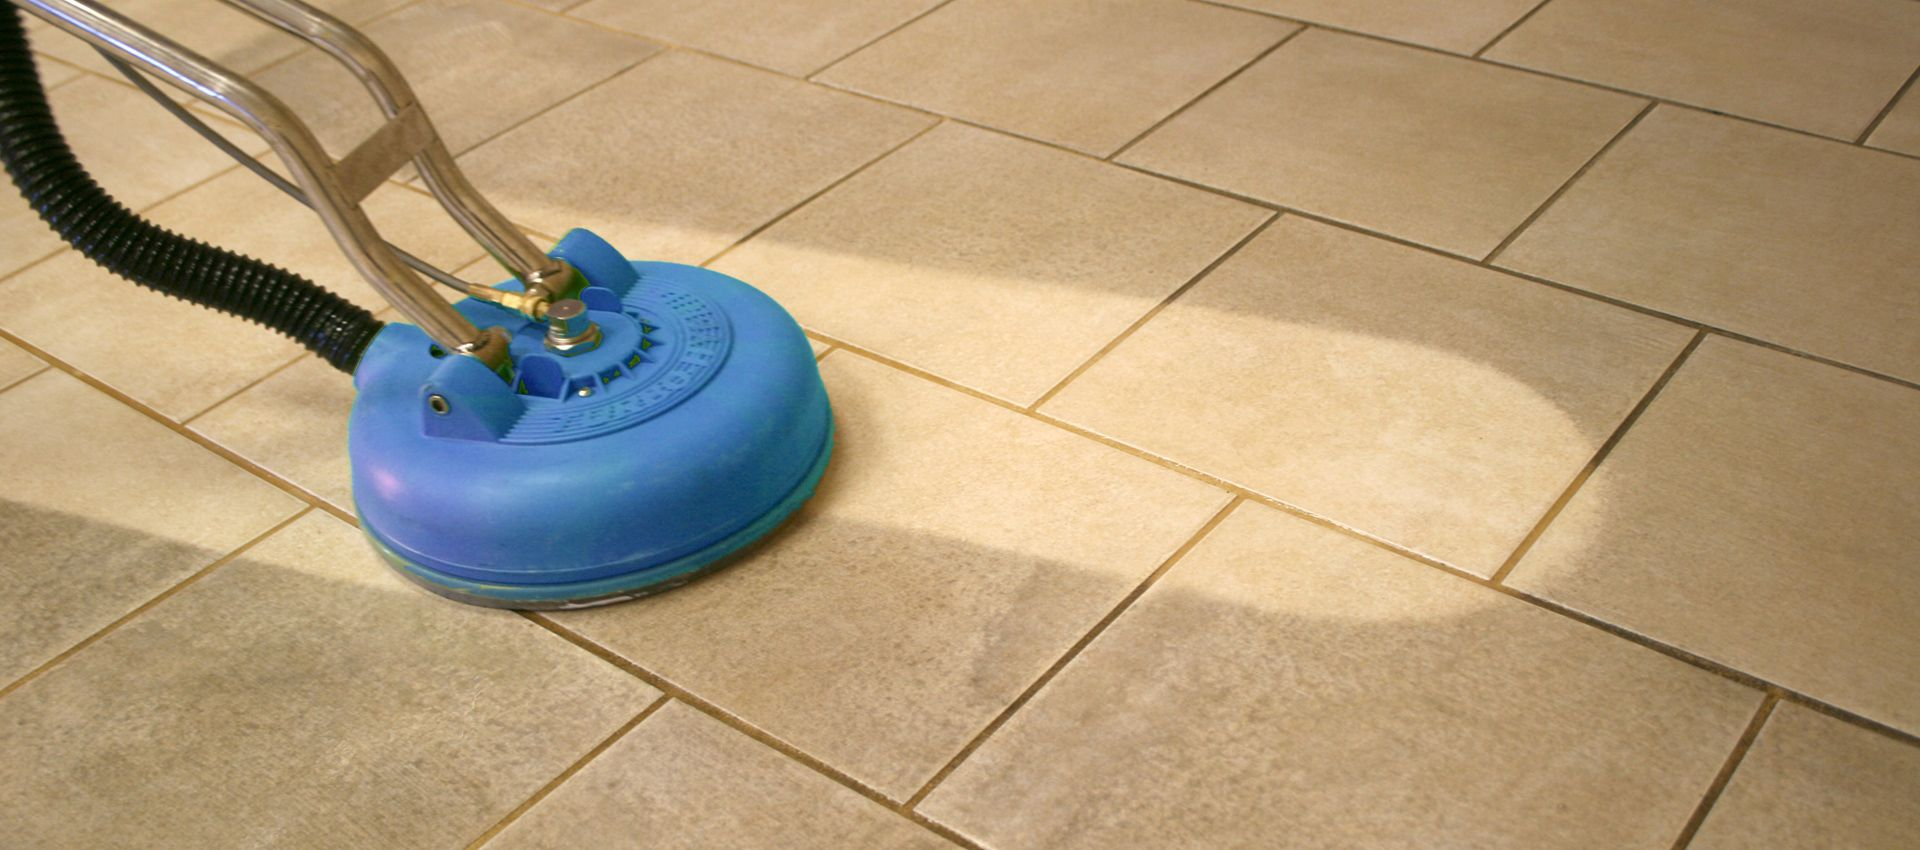 Kmc Tile Carpet Upholstery Cleaning Service Clearwater Fl 727